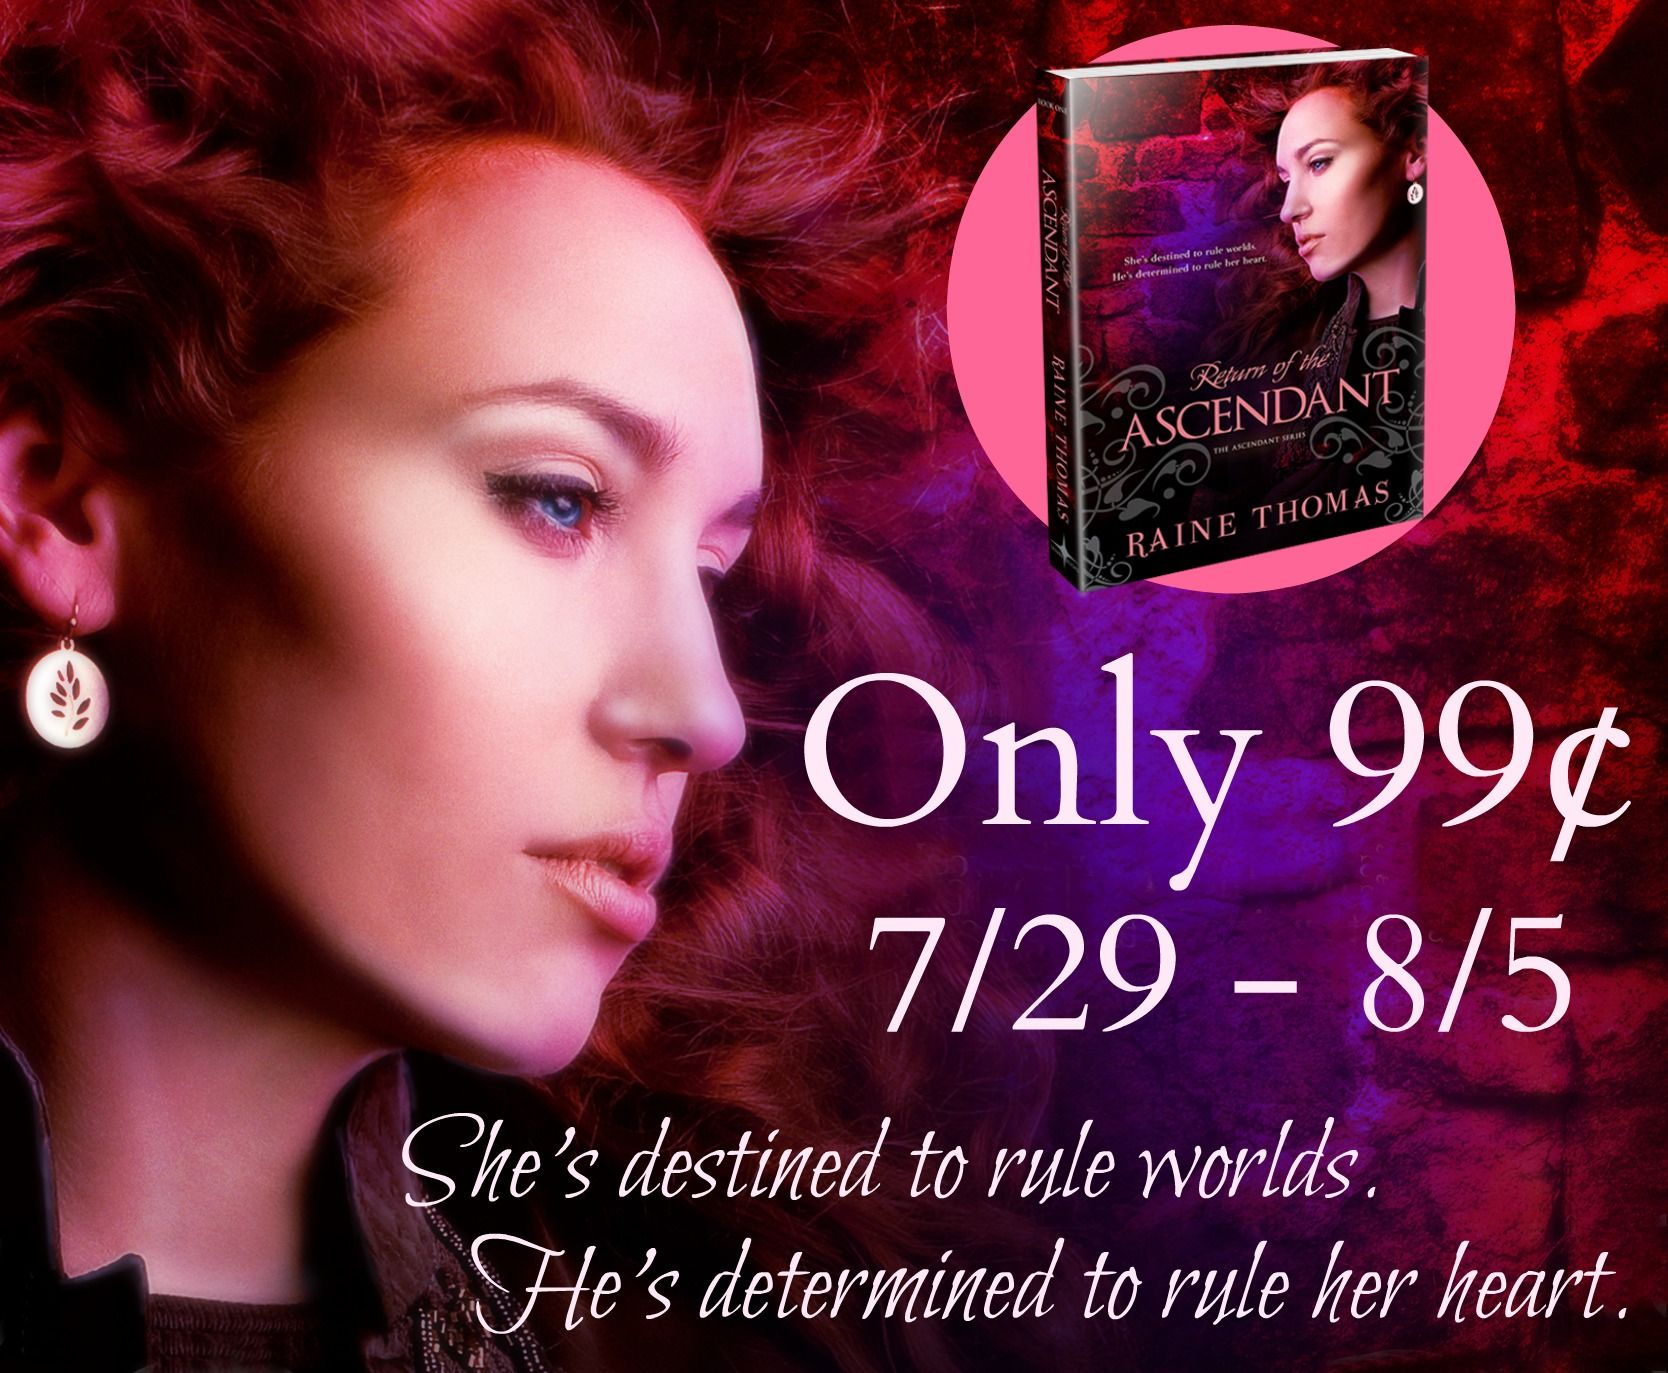 """She's destined to rule worlds. He's determined to rule her heart.""  Just 99¢ until 8/5!  RETURN OF THE ASCENDANT: Amazon – http://amzn.to/1fZ6NCV Amazon UK - http://amzn.to/1mYlDeh Barnes and Noble – http://bit.ly/1qgzhJK iBooks – http://bit.ly/1lWxCvz Kobo - http://bit.ly/1e6ah81"